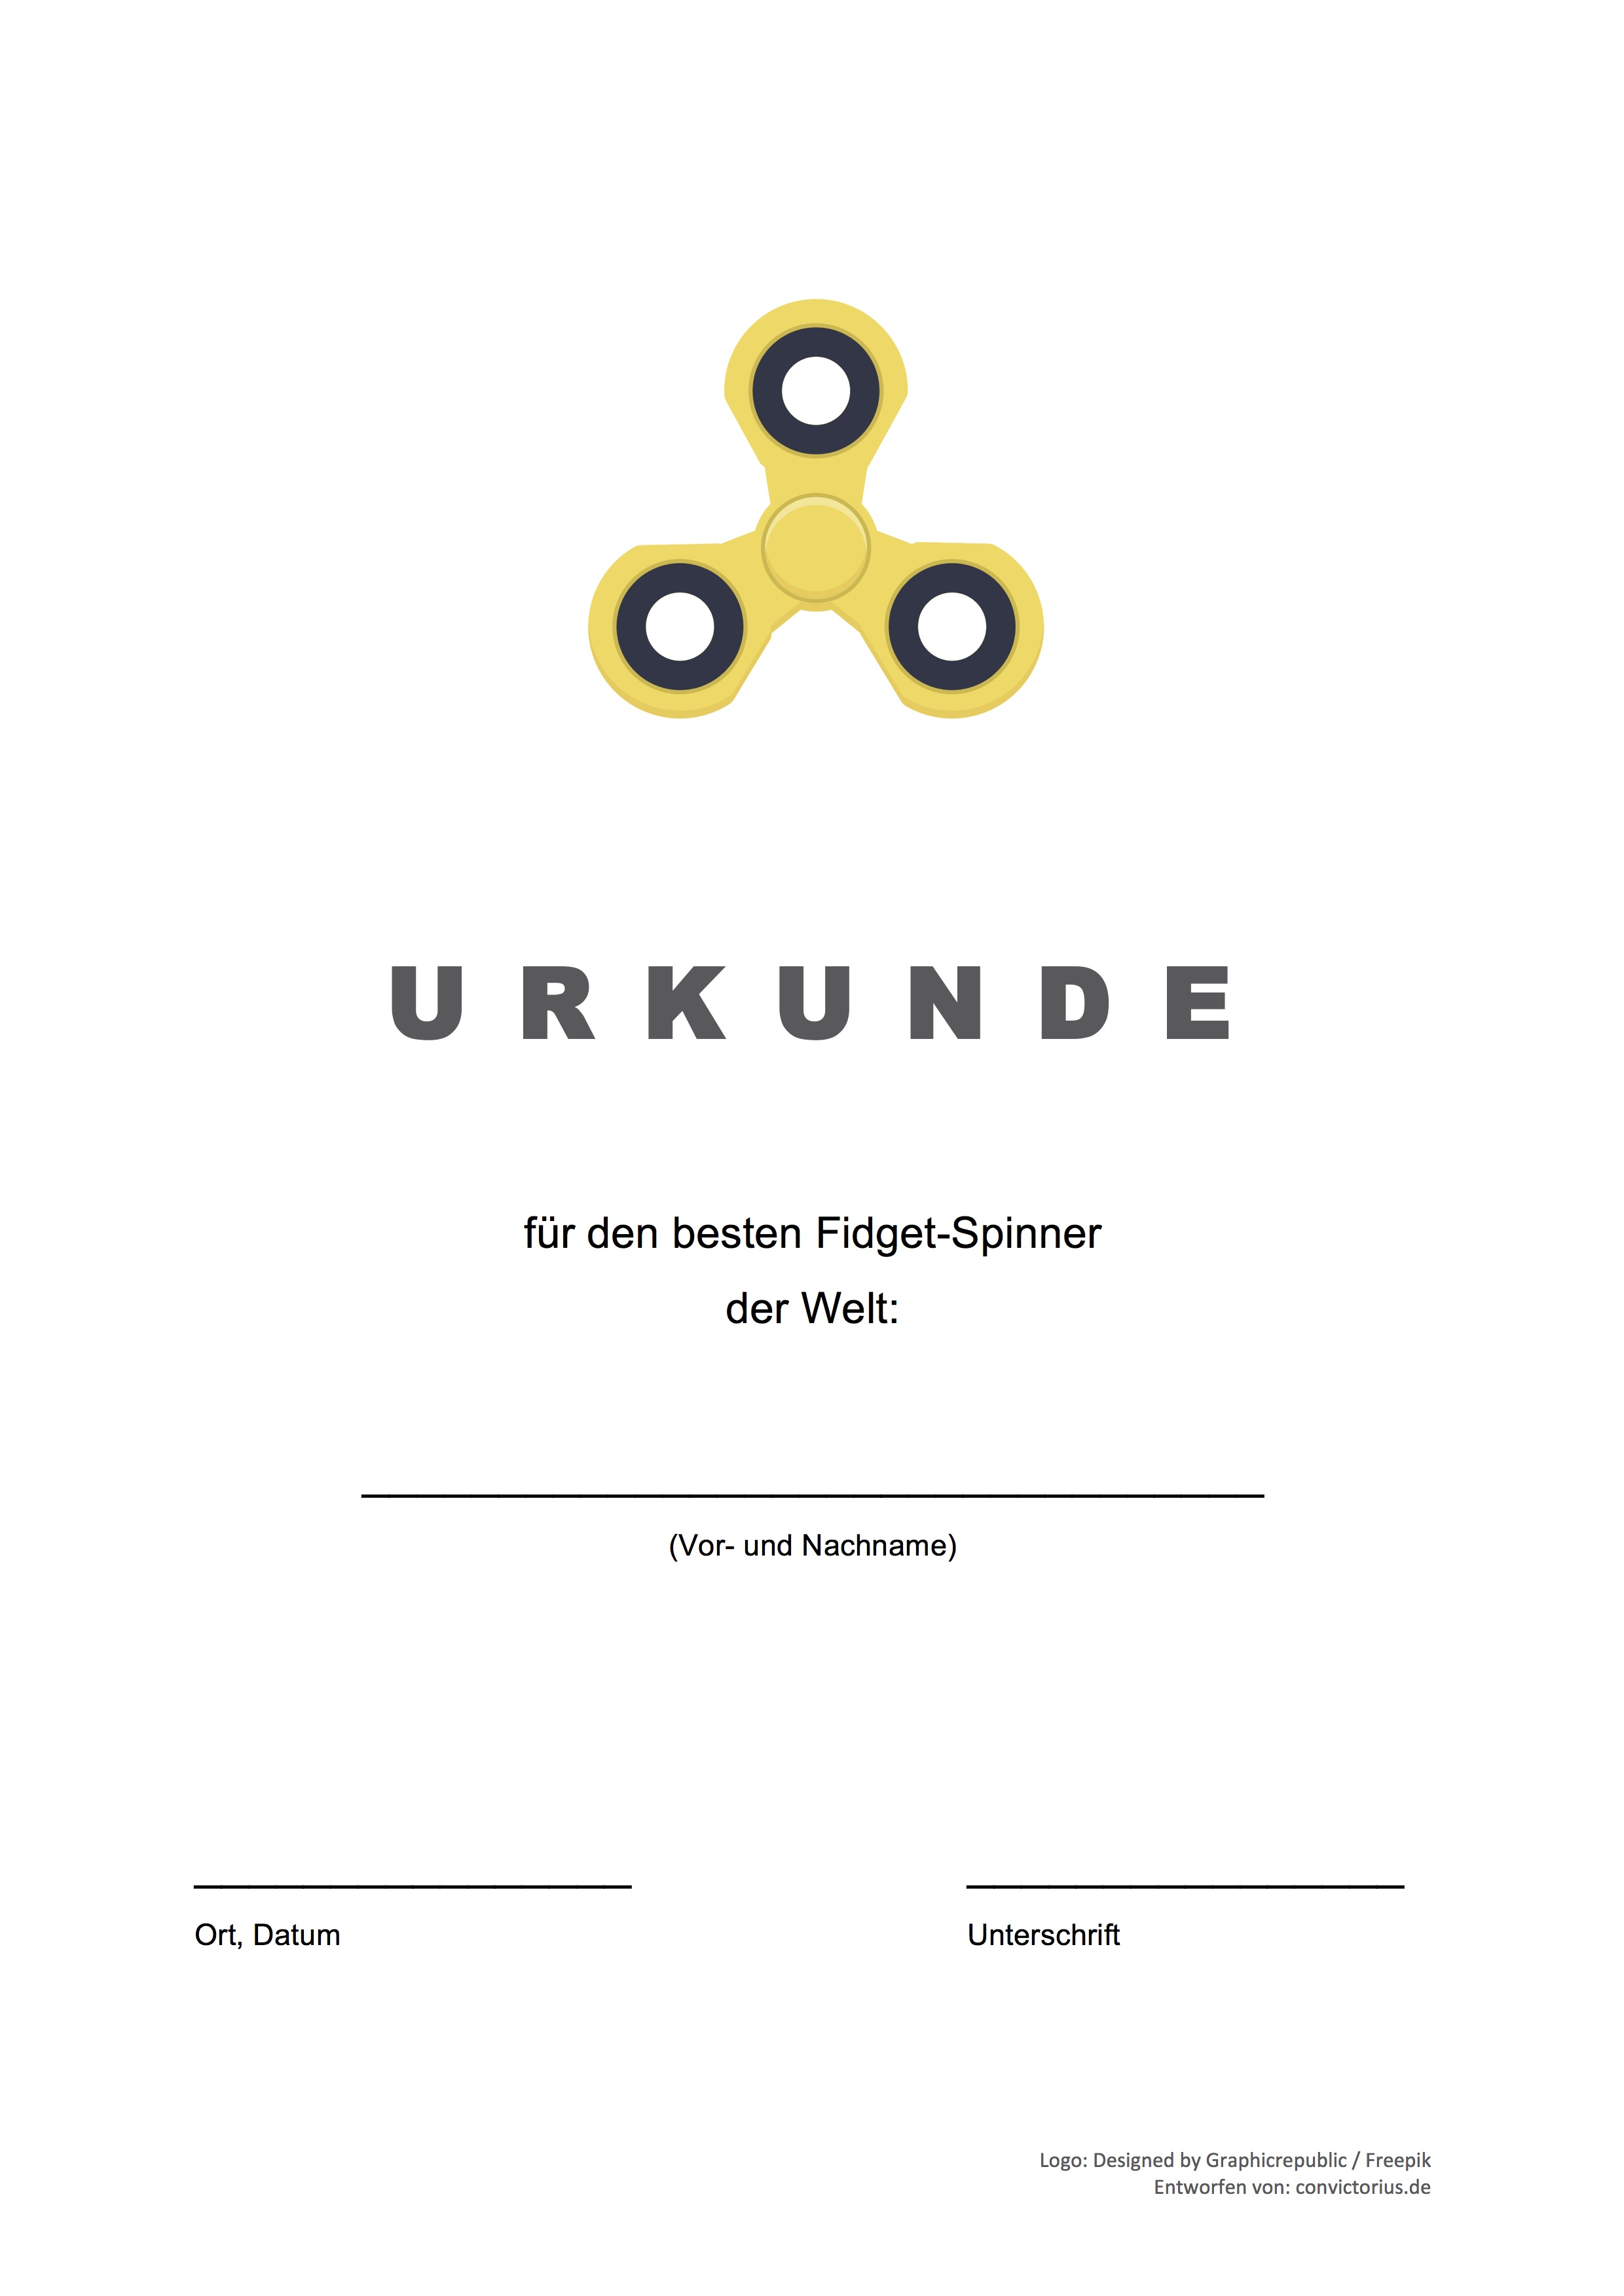 gratis vorlage fidget spinner urkunde word pdf convictorius. Black Bedroom Furniture Sets. Home Design Ideas